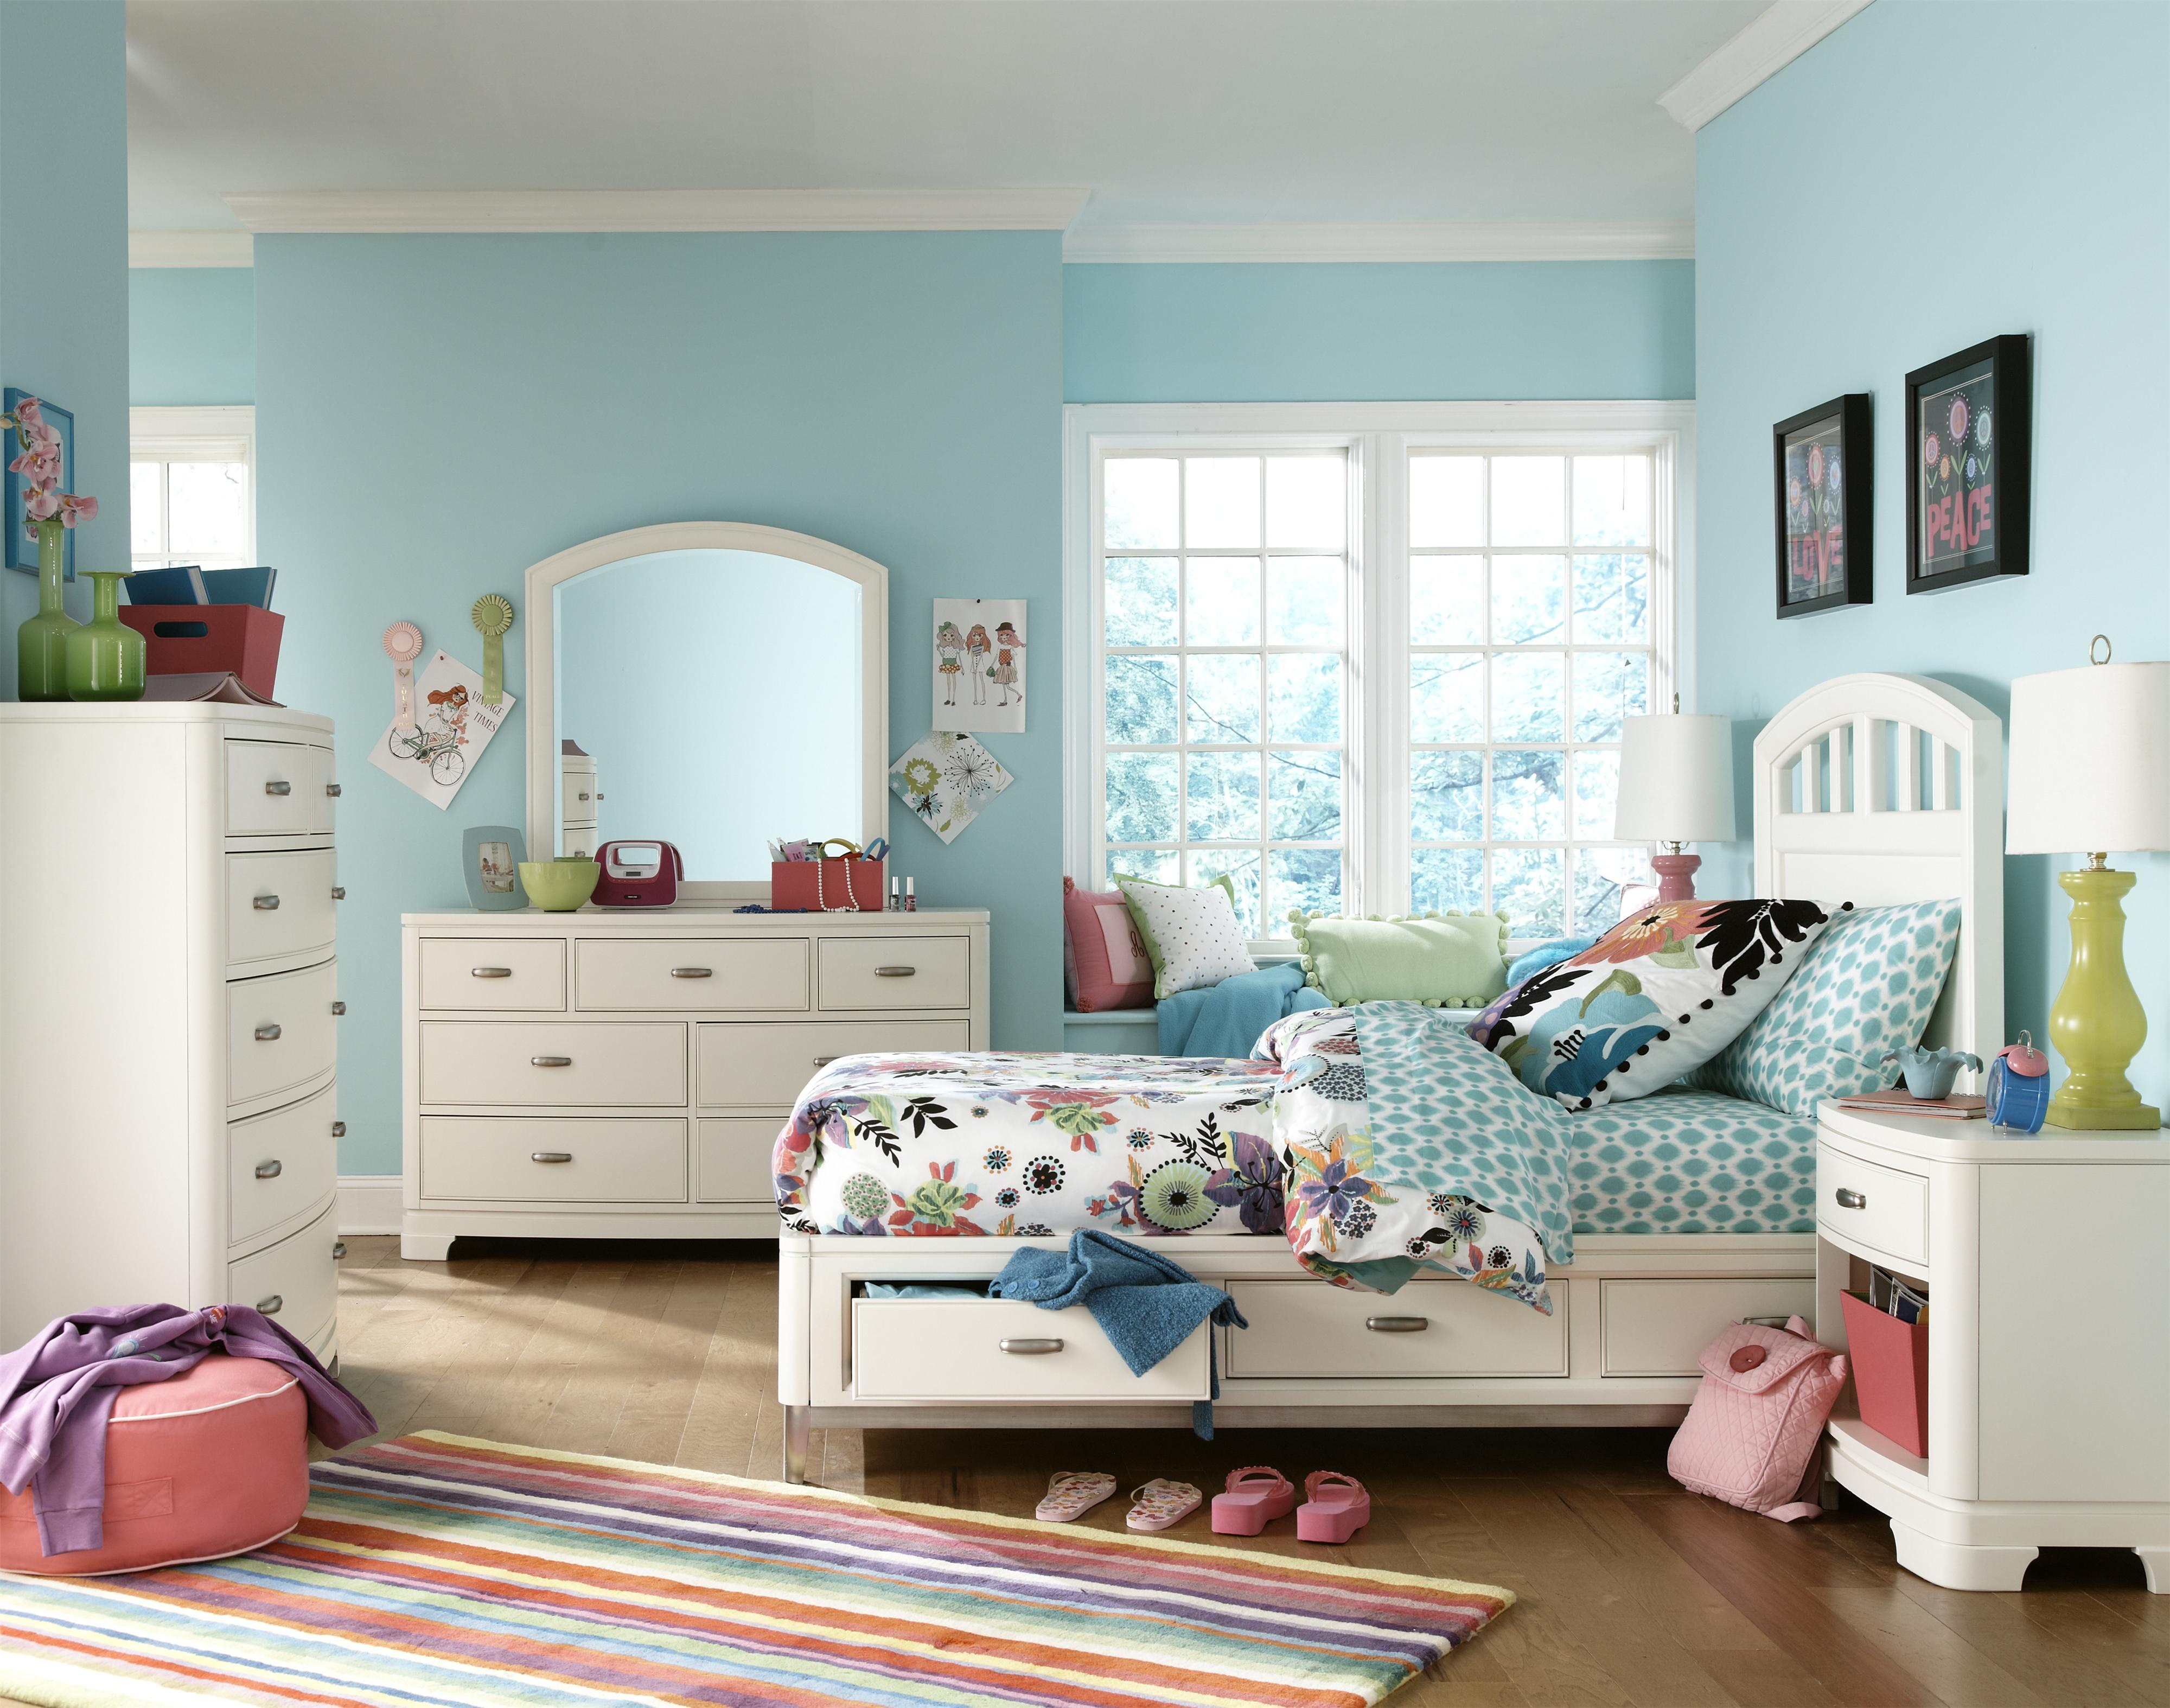 Park City White 9910 By Legacy Classic Kids Belfort Furniture Legacy Classic Kids Park